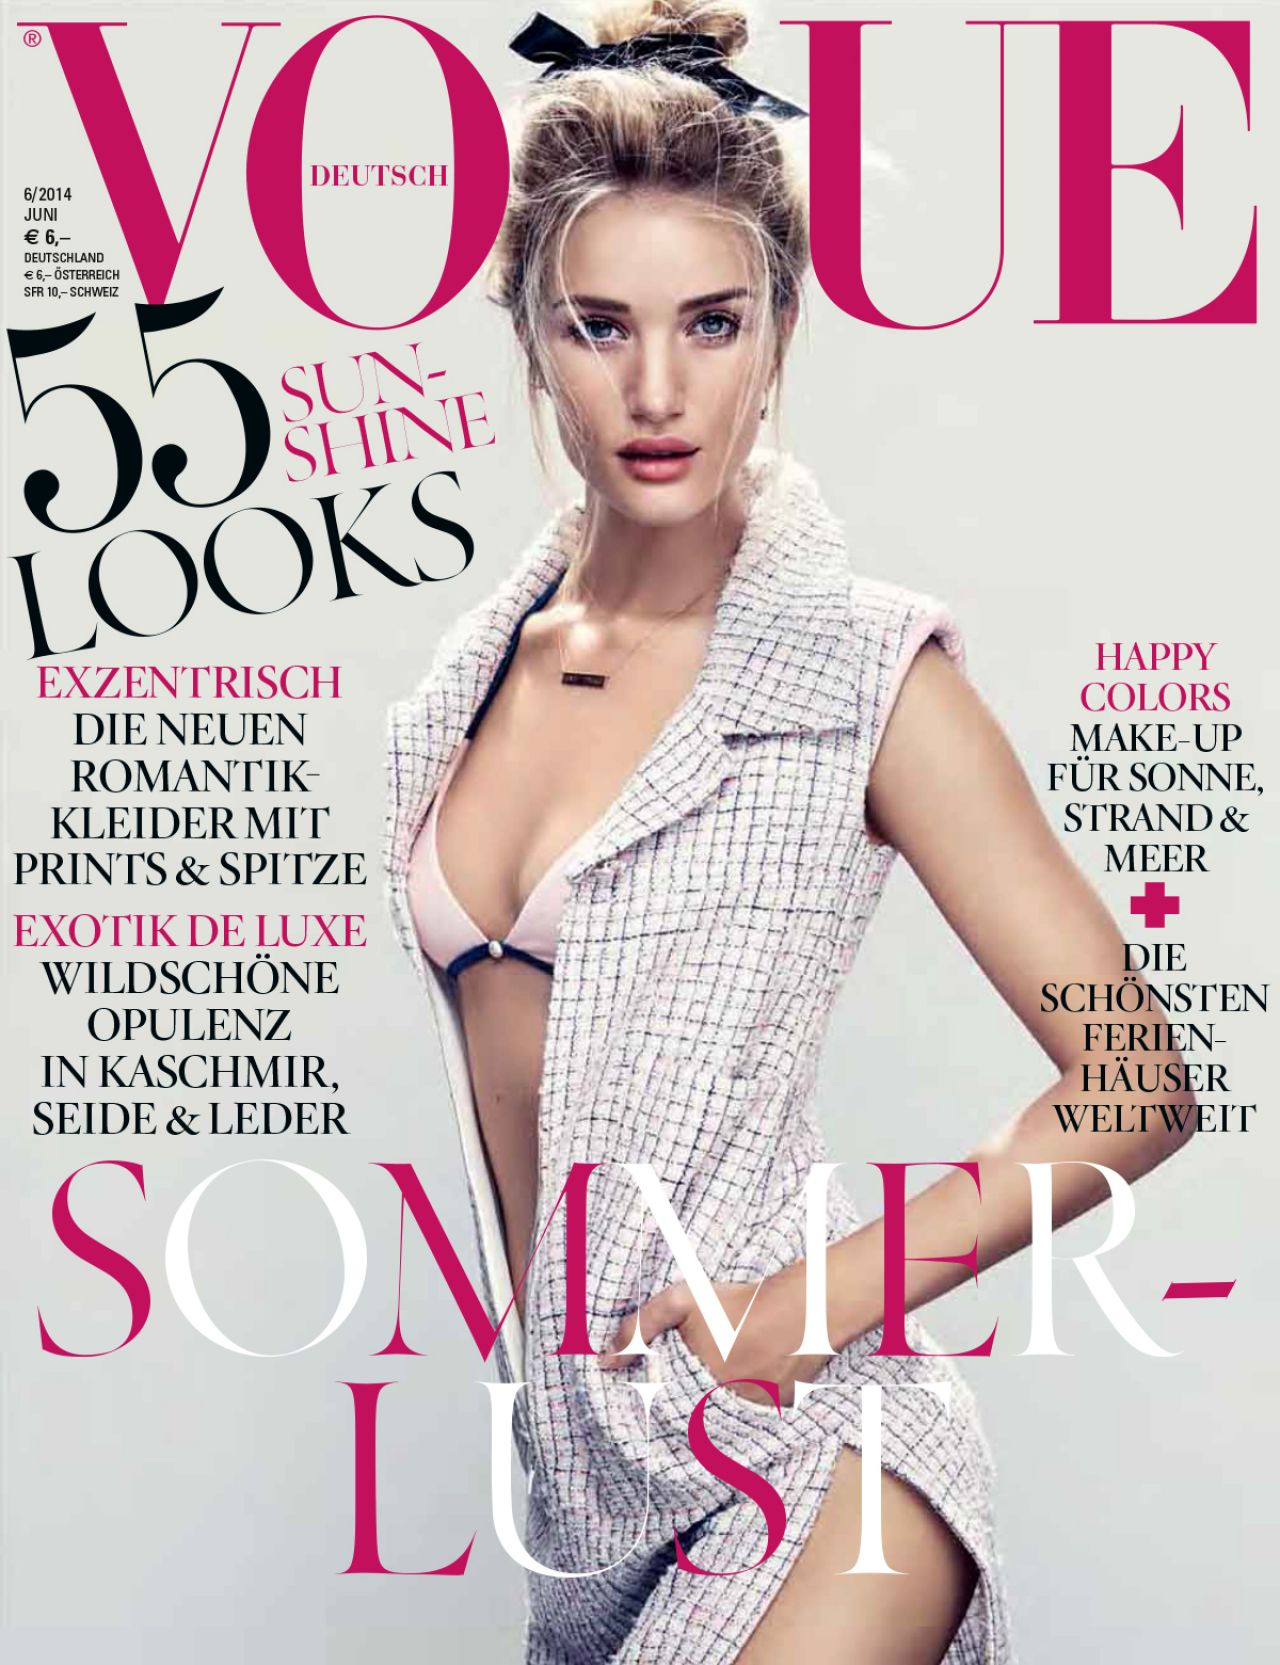 Rosie Huntington-Whiteley - Vogue Magazine (Germany) June 2014 Issue